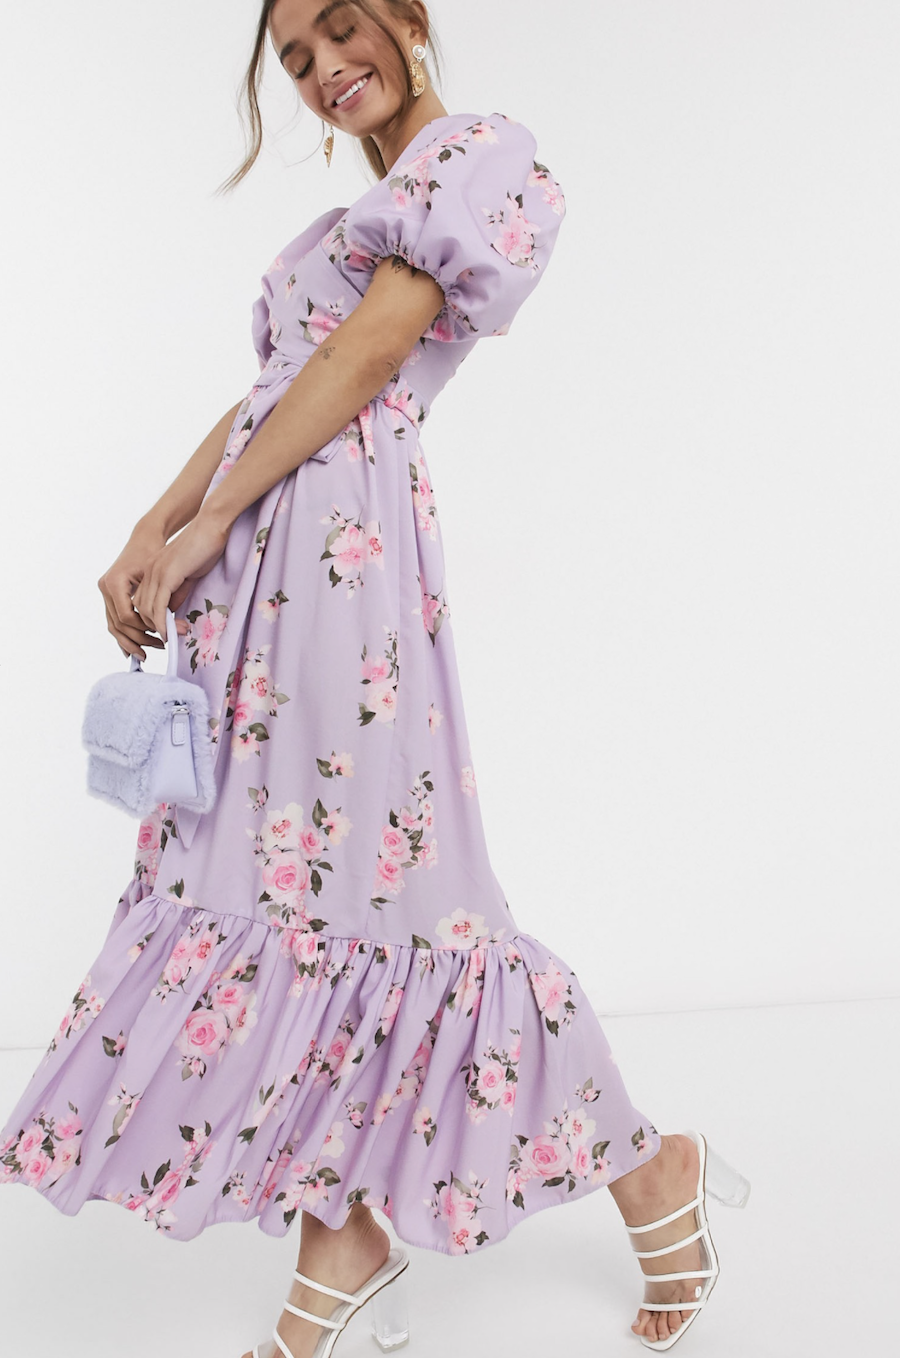 Midi puffed-sleeve dress with crossover design and ruffle bottom in lilac floral print exclusive to John Zack Petite